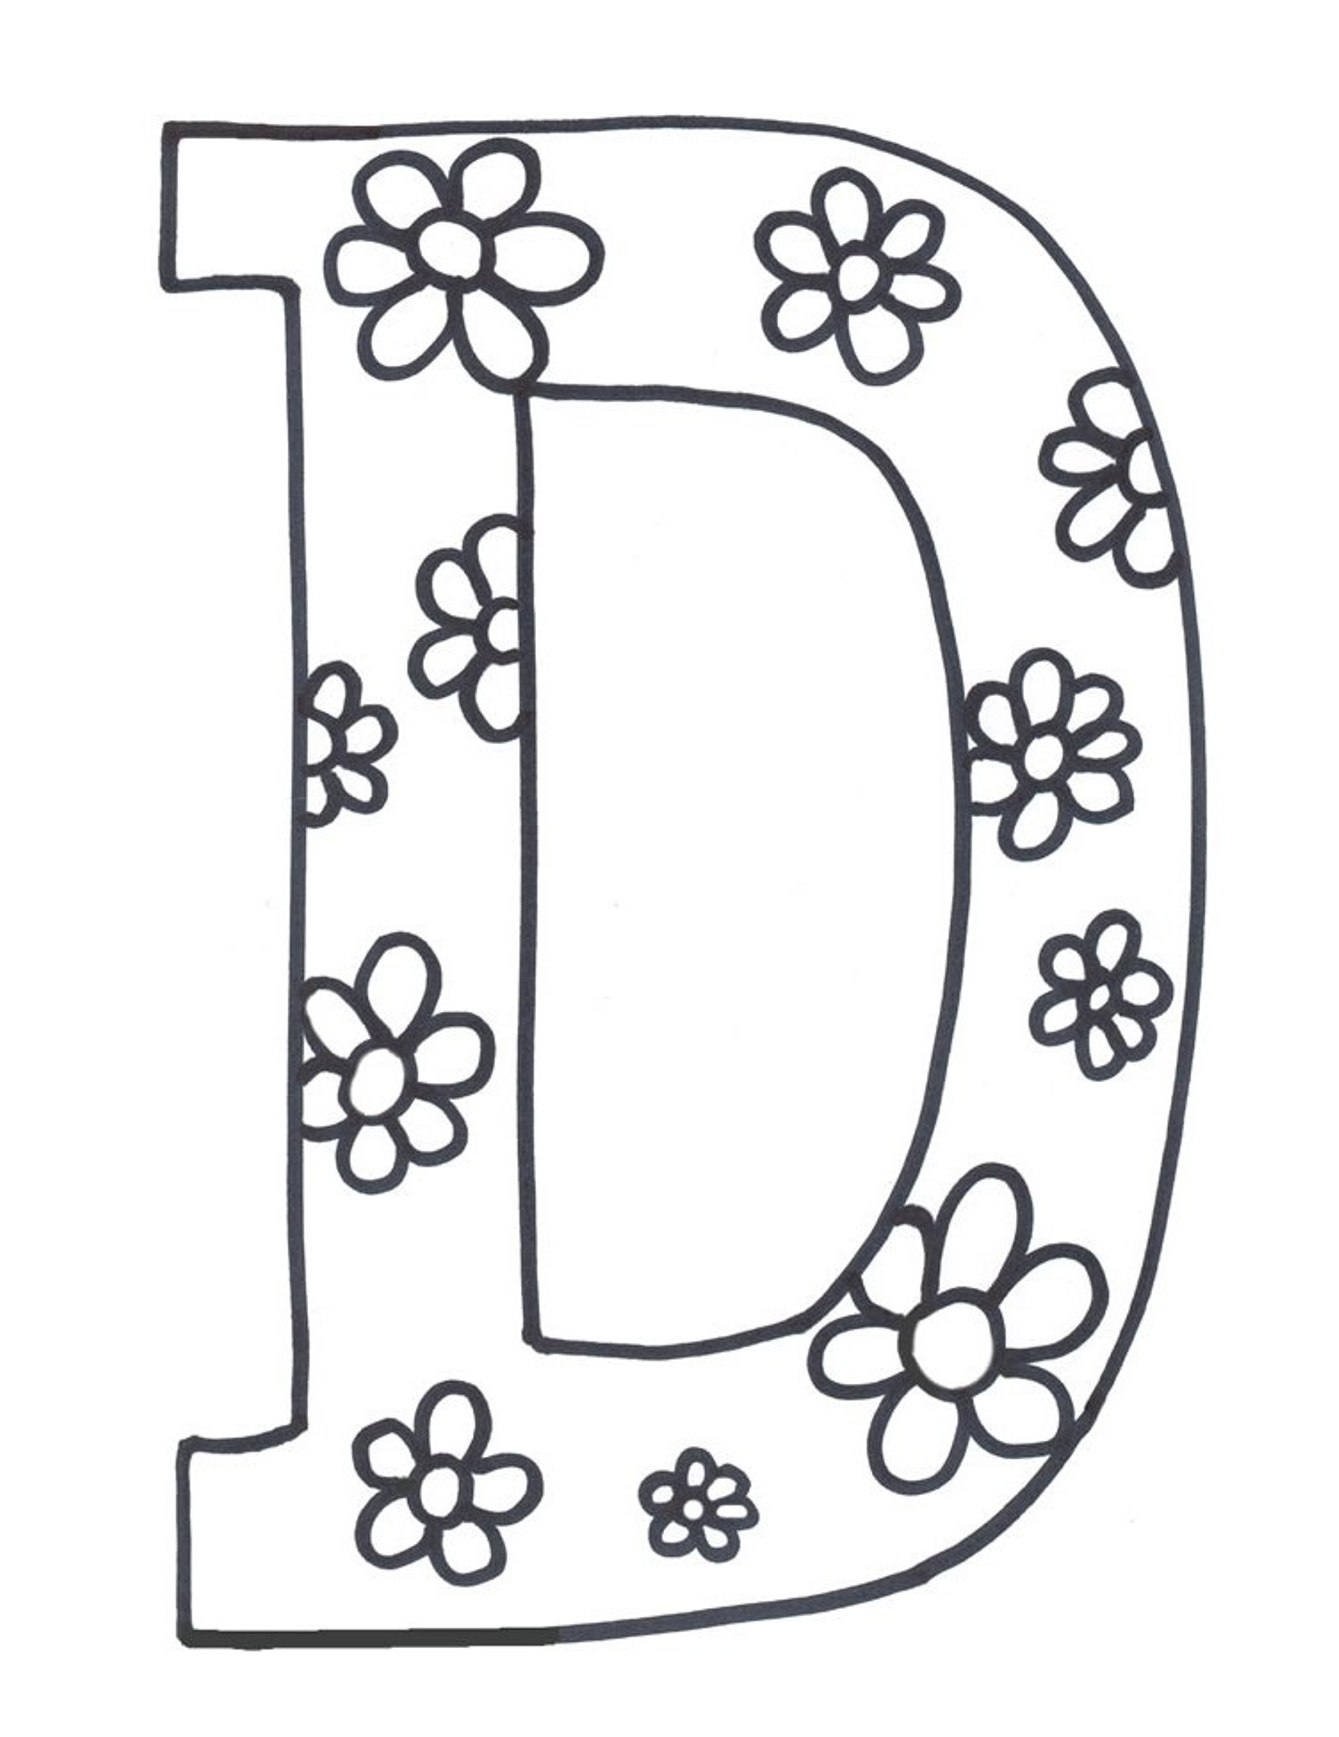 coloring pages alphabet a - letter d coloring pages to download and print for free